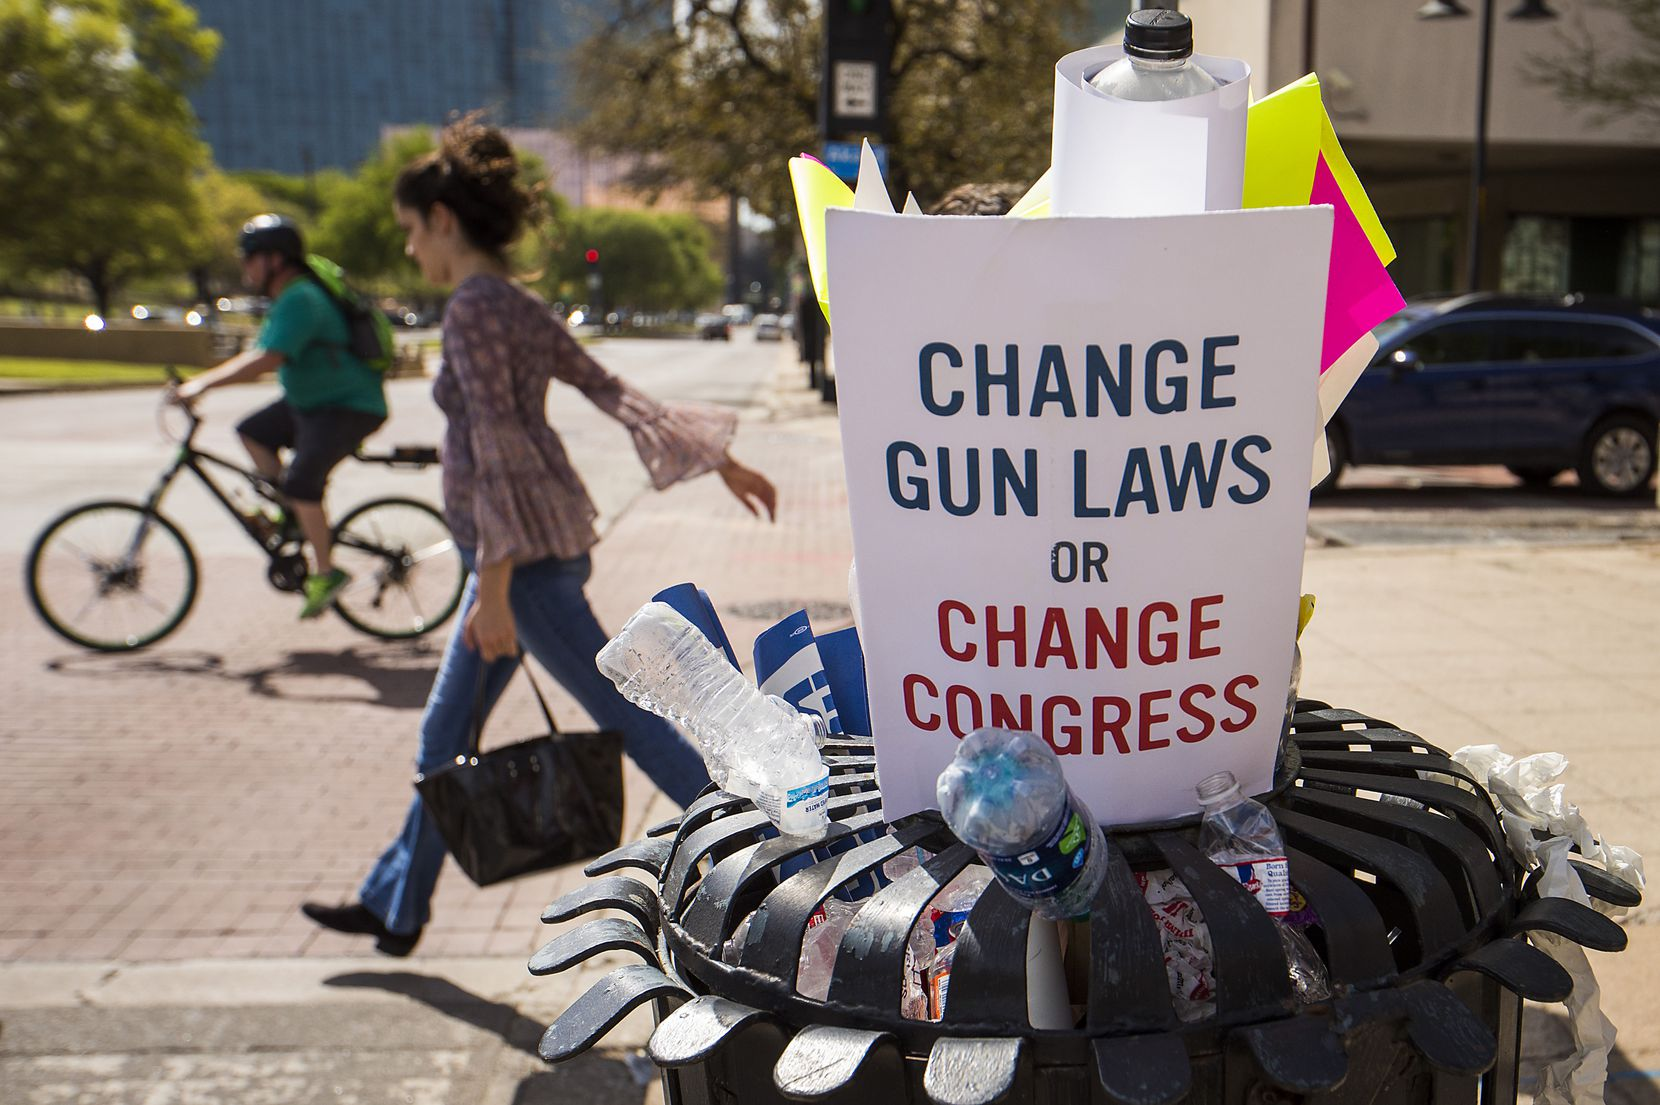 Protest signs and water bottles fill a sidewalk trash bin after a rally and march in support of gun safety laws.